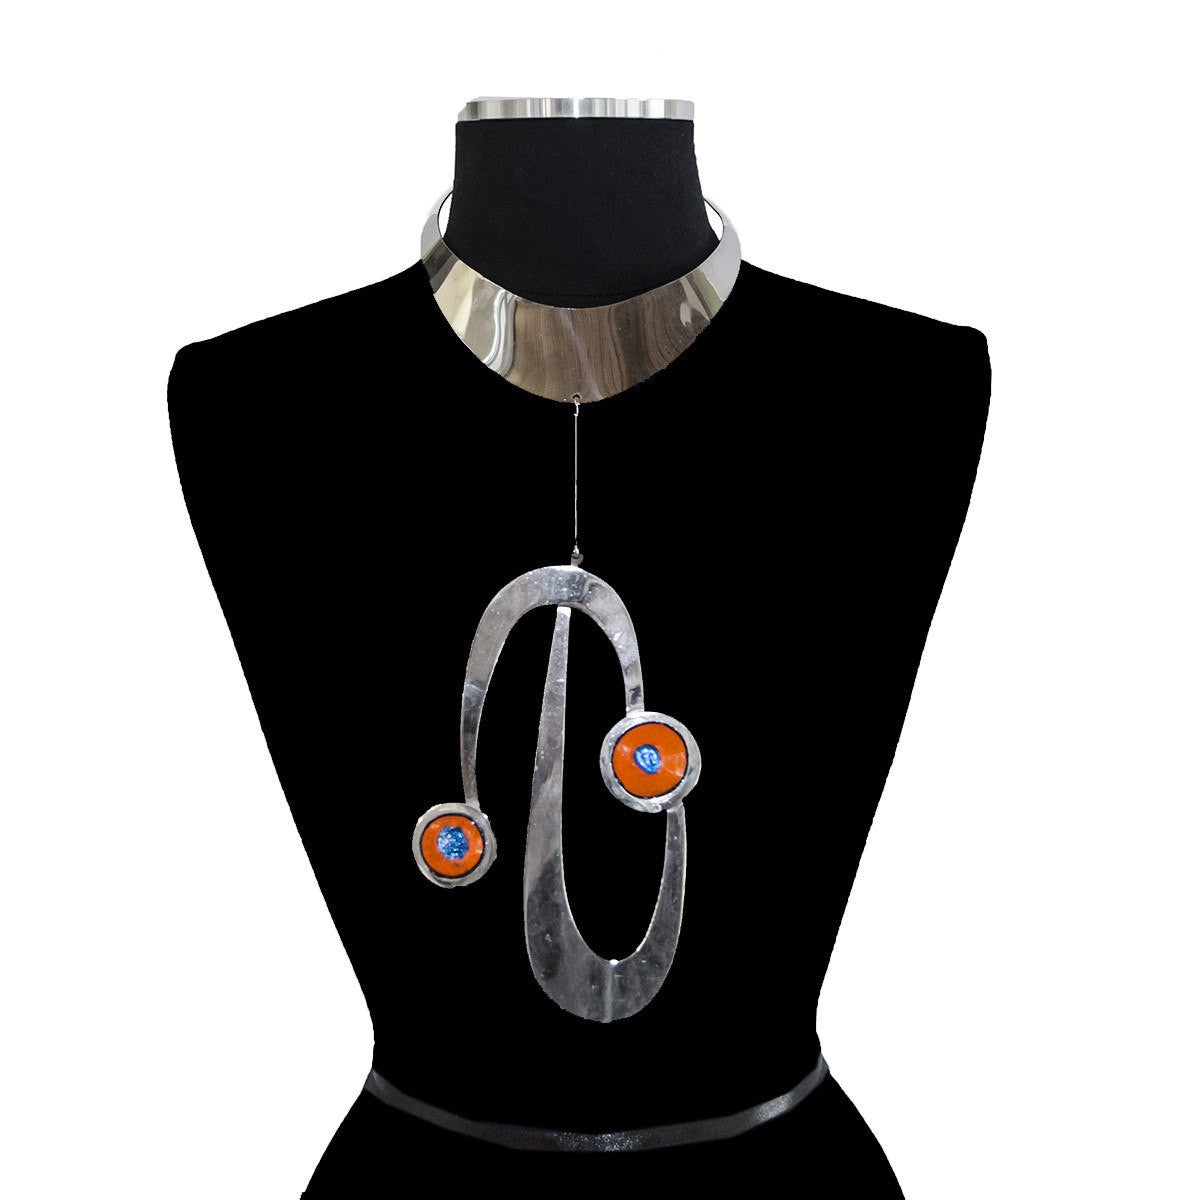 Pierre Cardin circa 1969 Chrome Bib Necklace with Enamel Pendants 2